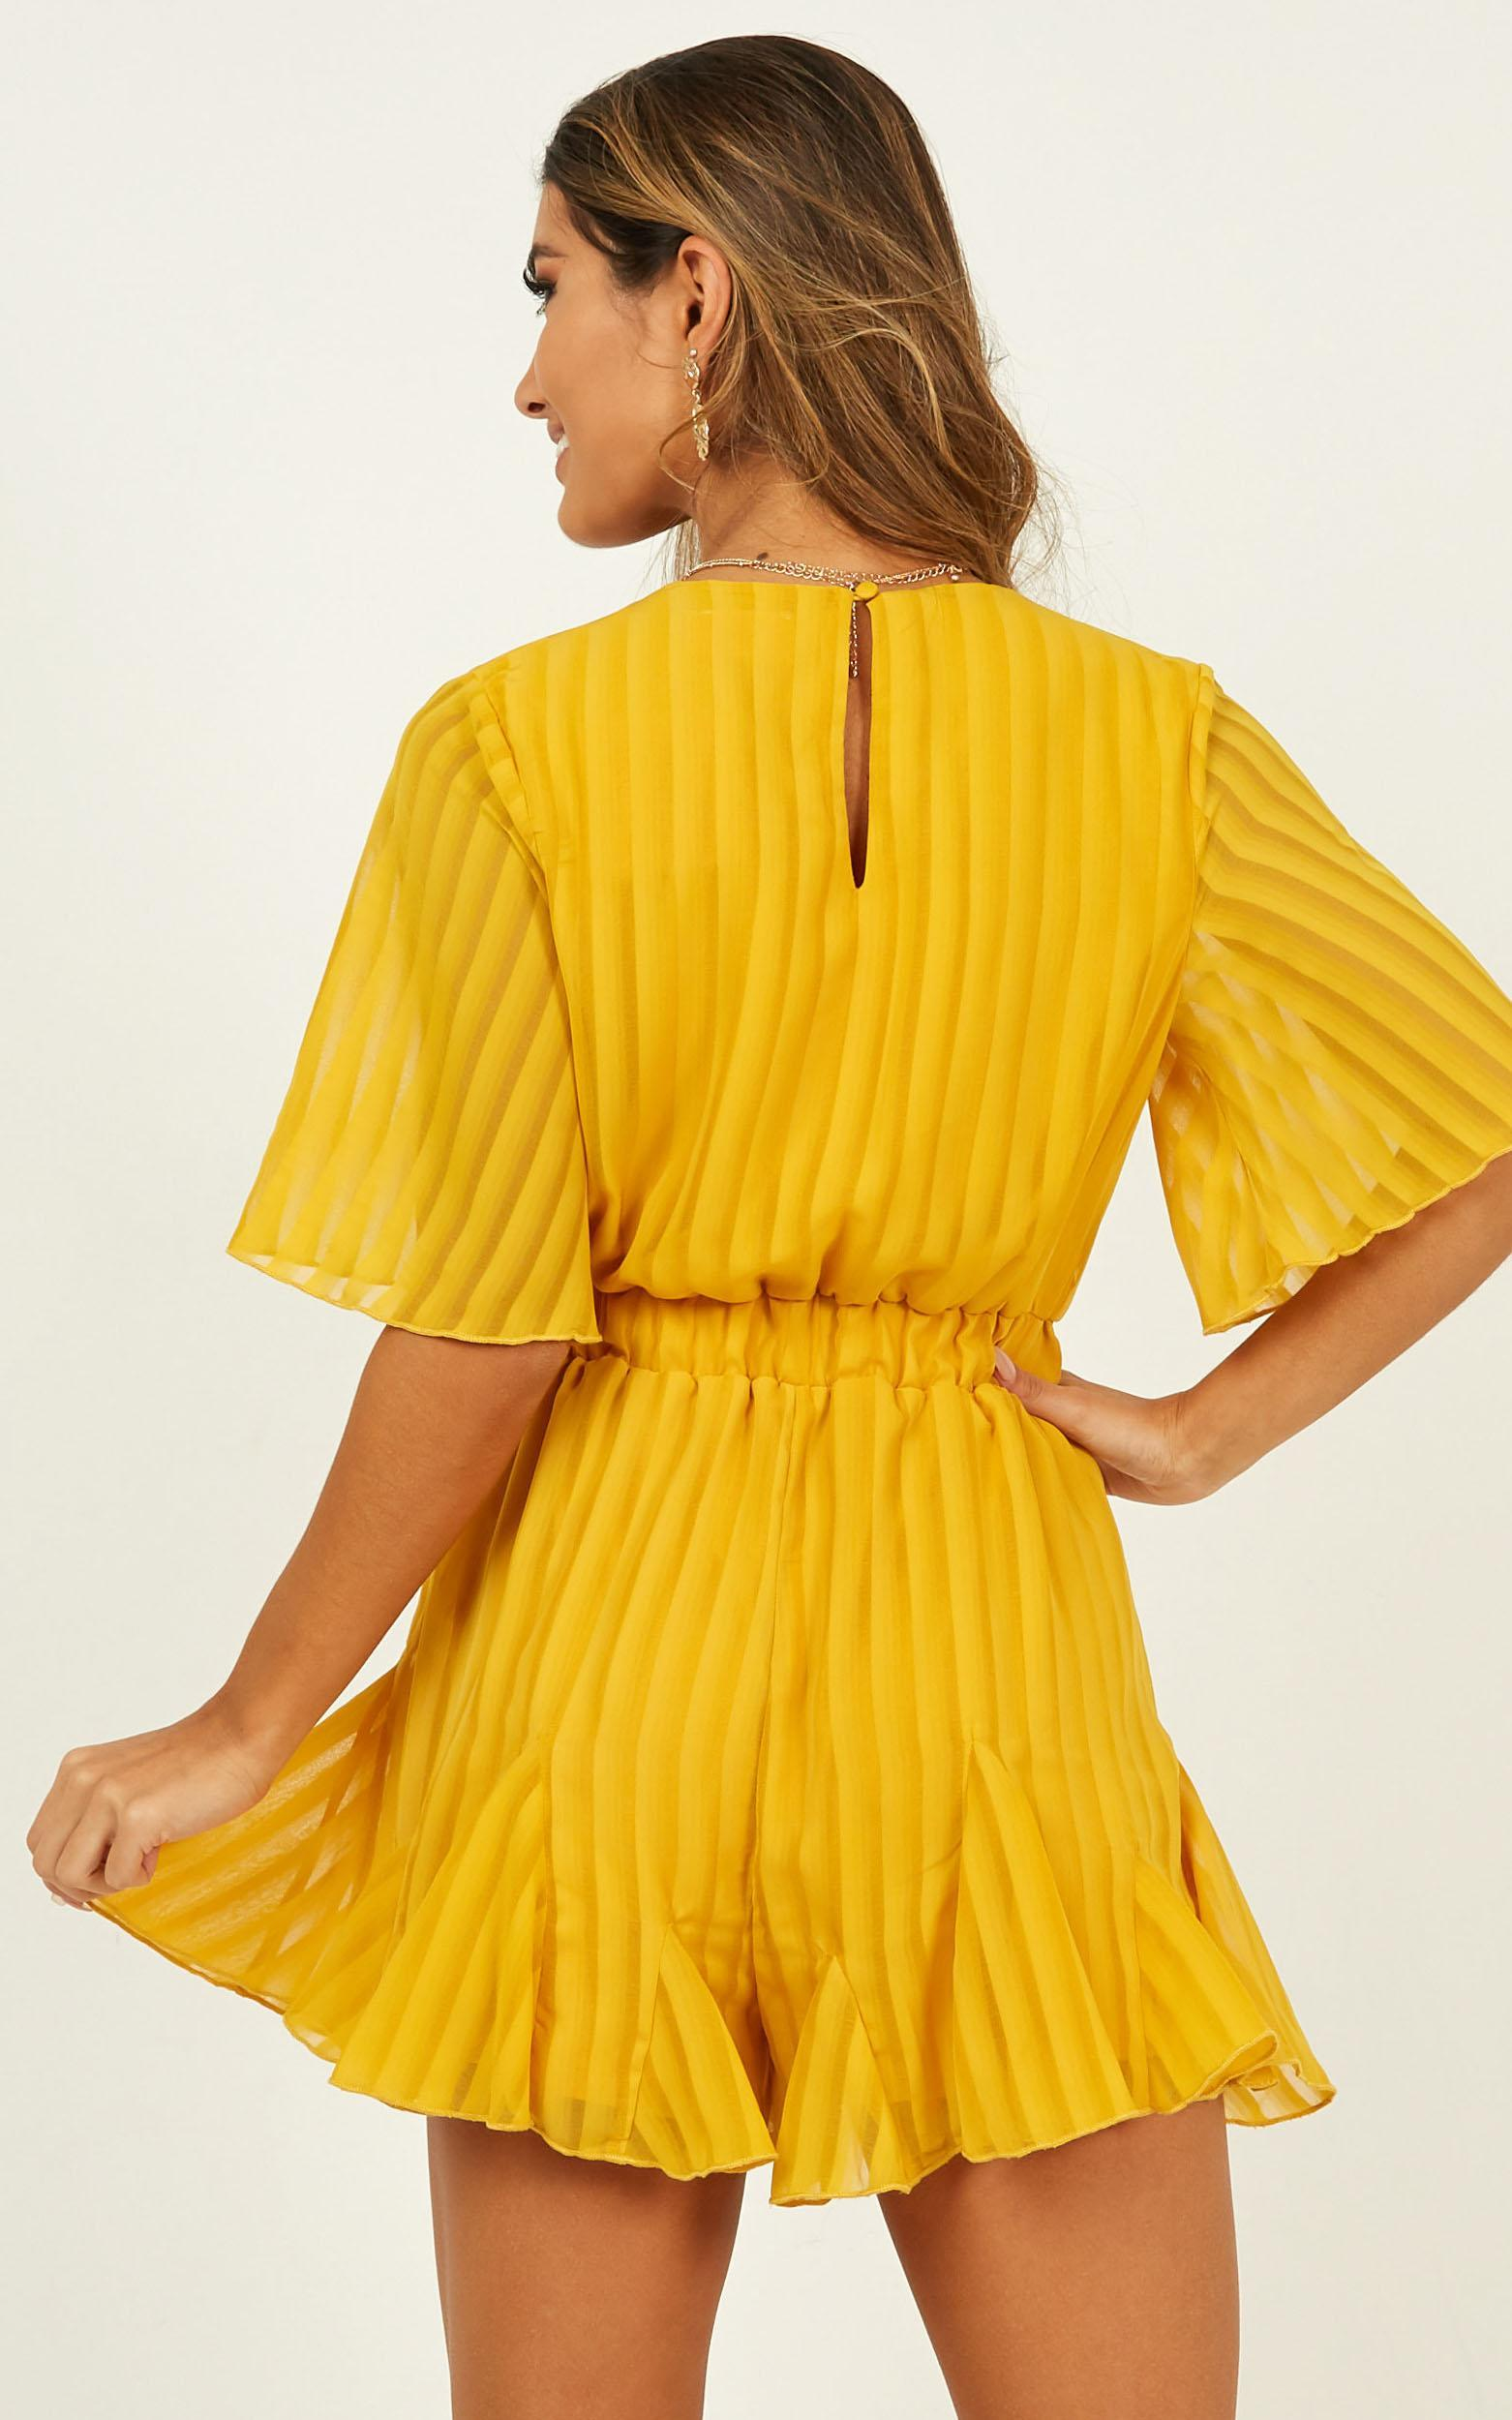 Play On My Heart Playsuit in mustard - 20 (XXXXL), Mustard, hi-res image number null